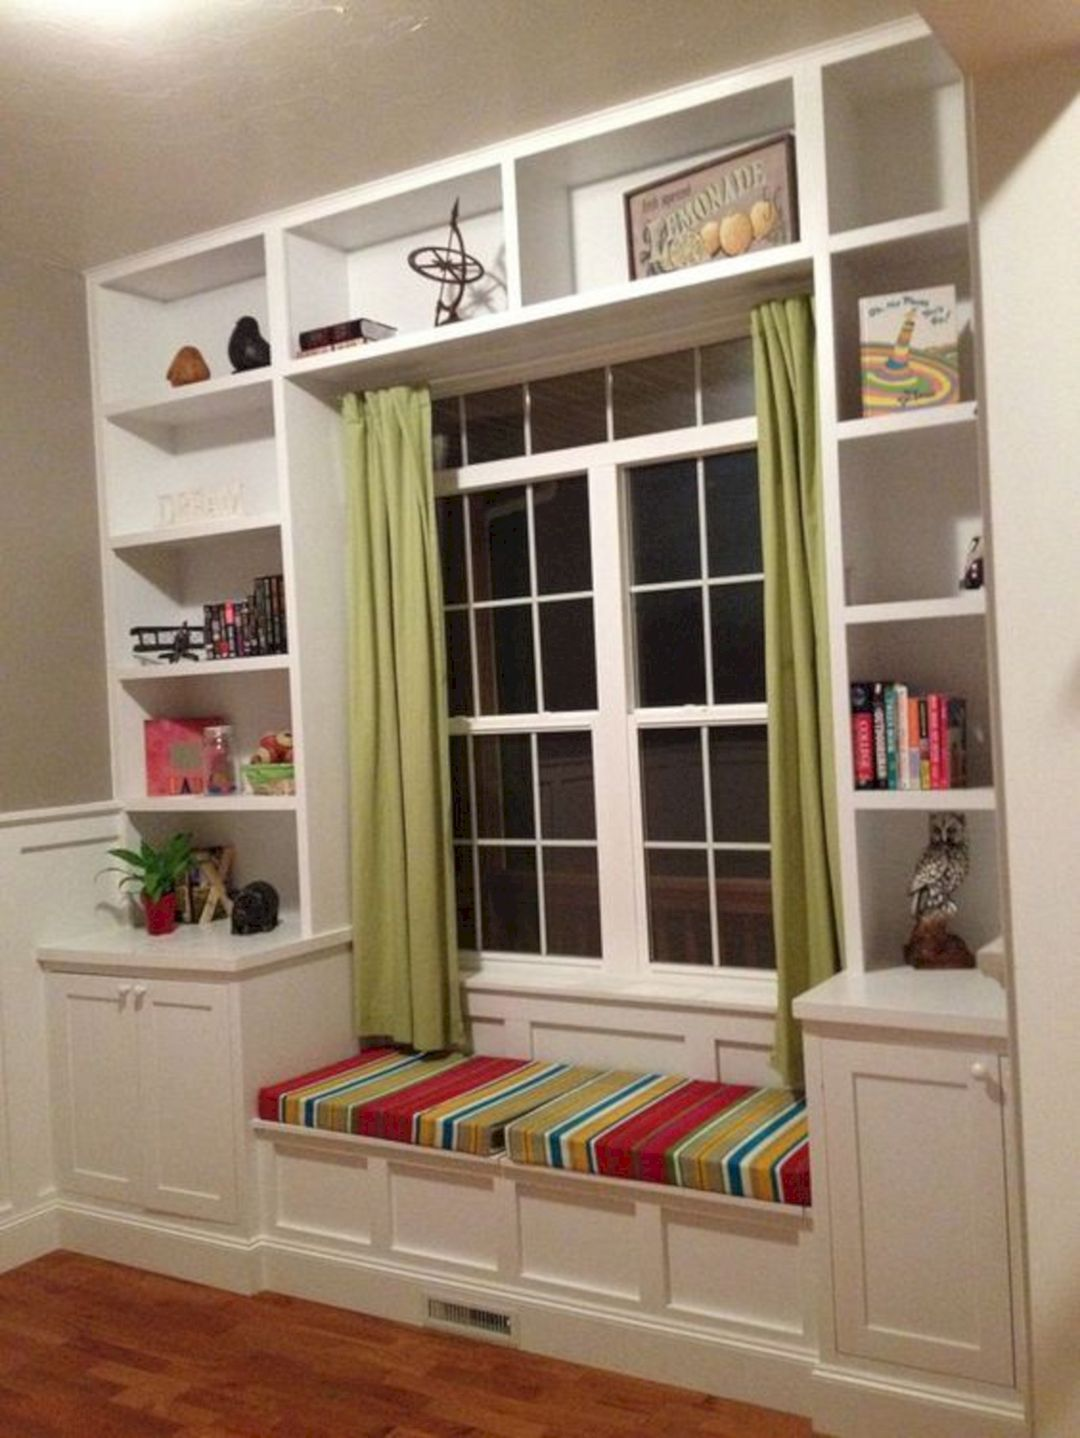 Awesome 85 Marvelous Bedroom Storage Ideas for